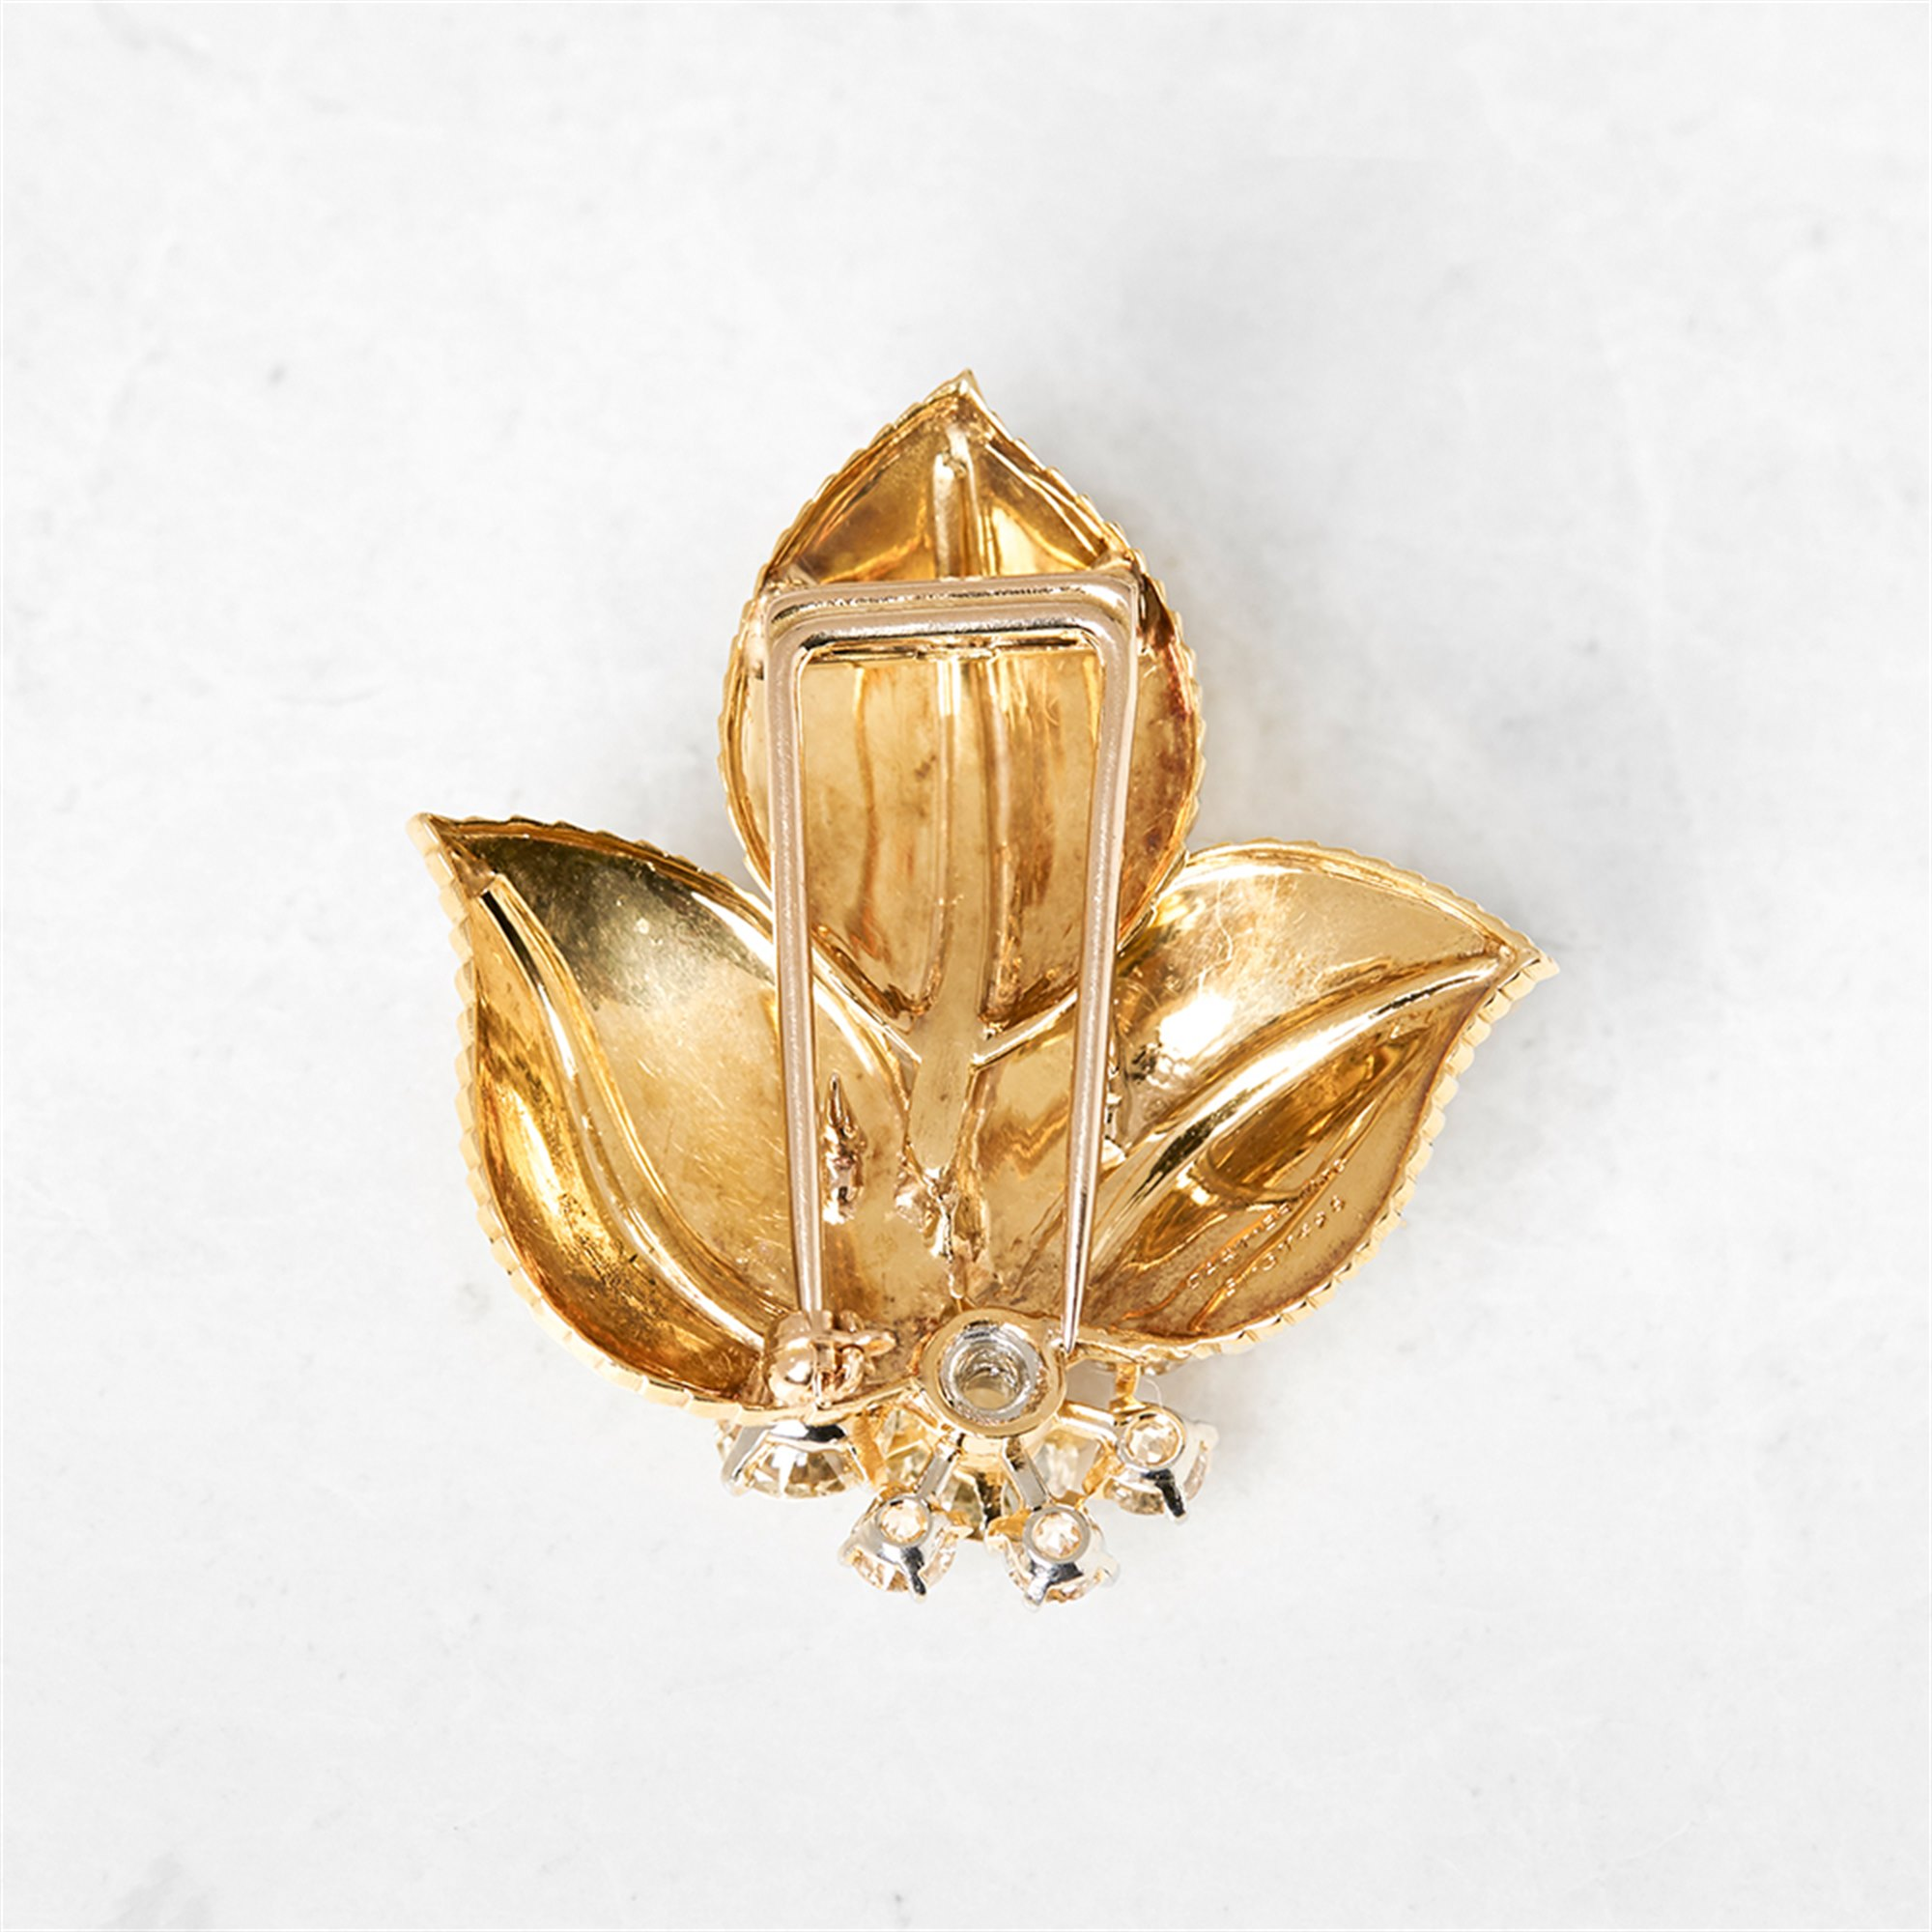 Cartier 18k Yellow Gold Diamond Vintage Leaf Design Brooch